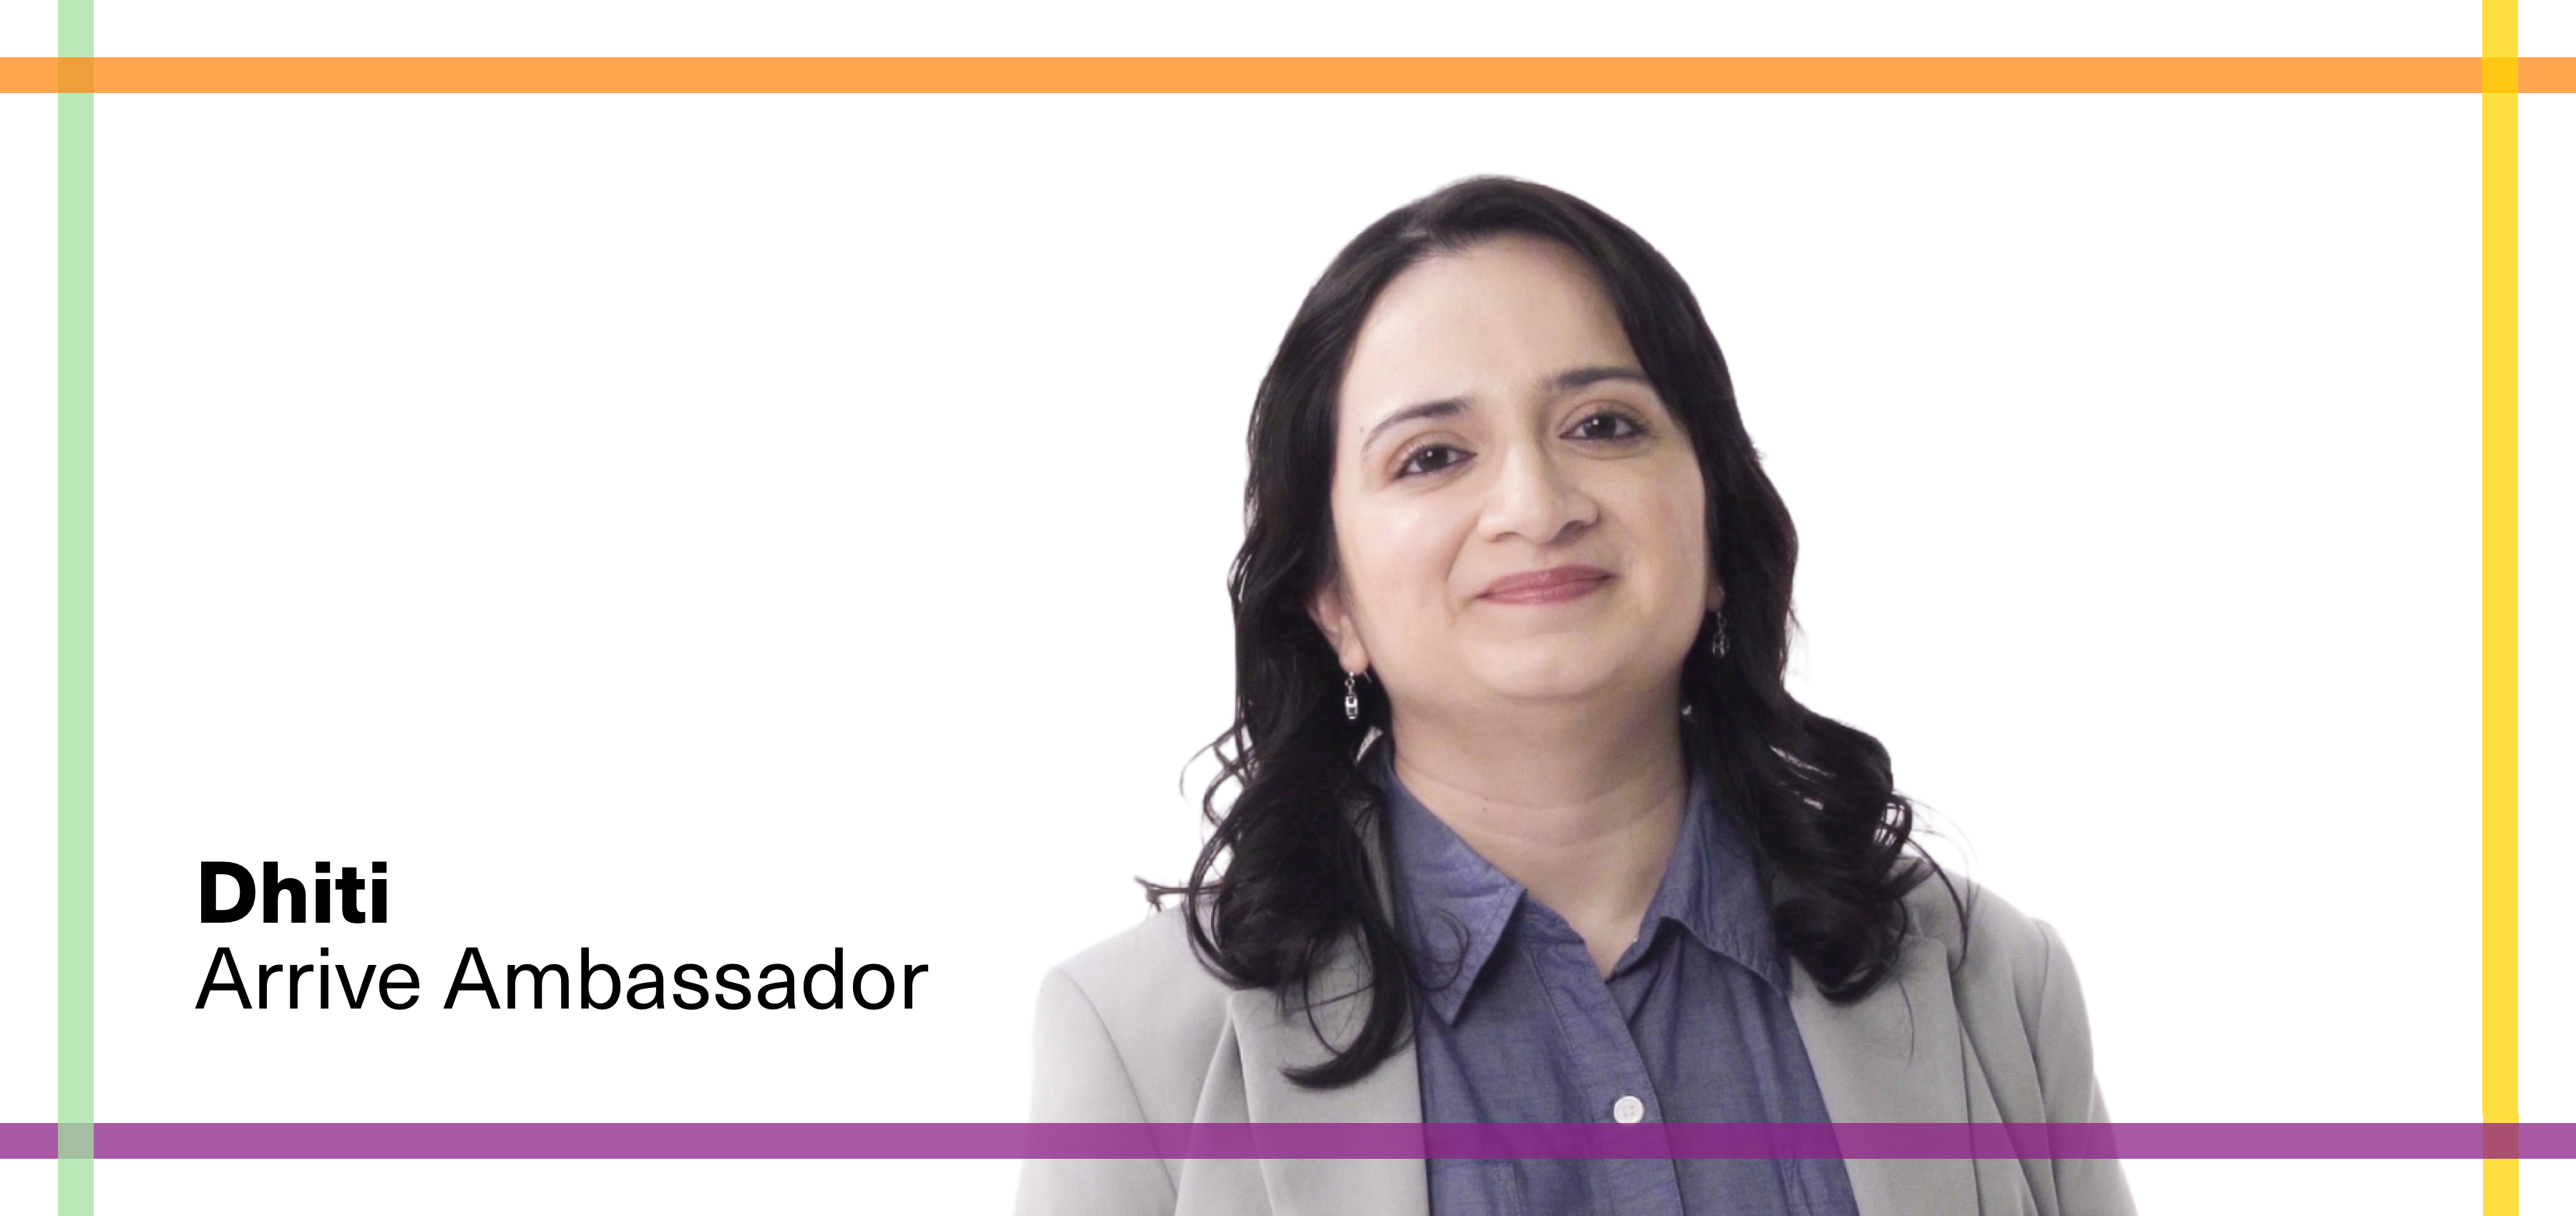 A picture of Dhiti Nanavati, Content Marketing Manager, and Arrive Ambassador